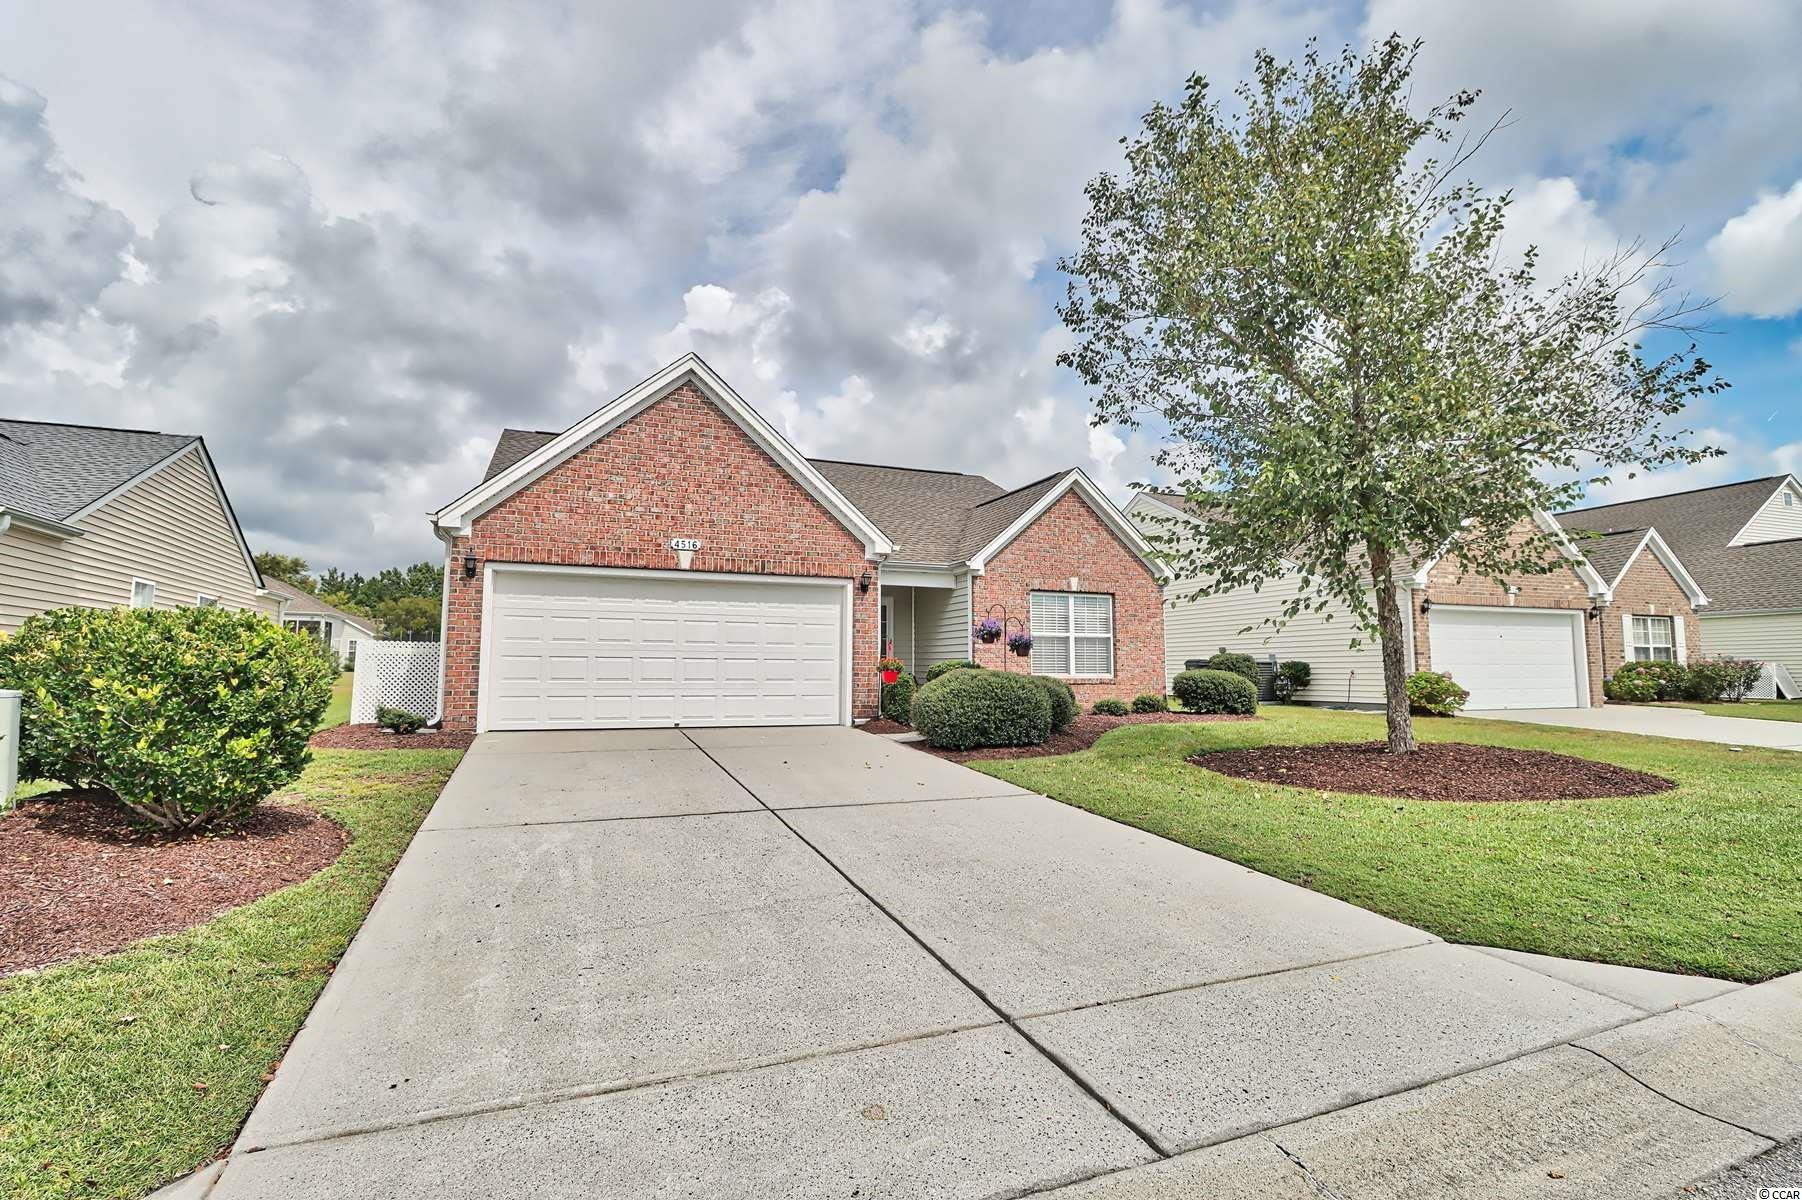 As you enter this spacious three bedroom, two bath, single level home, you will immediately notice the large open floor plan. The spacious kitchen with breakfast bar boasts beautiful white and grey granite countertops, marble backsplash, stainless steel appliances, forty-two inch cabinets, and luxury vinyl plank flooring throughout. The living area includes a cozy fireplace, vaulted ceilings and flows directly into the bright Carolina Room off the back of the home . The master bedroom includes vaulted ceilings, ceiling fan, and walk-in closet.  The en suite master bath has tile flooring, double sinks with granite countertops, a garden tub, and shower.  With the huge patio and fenced-in backyard, this home is move in ready and offers the perfect outdoor space for entertaining.